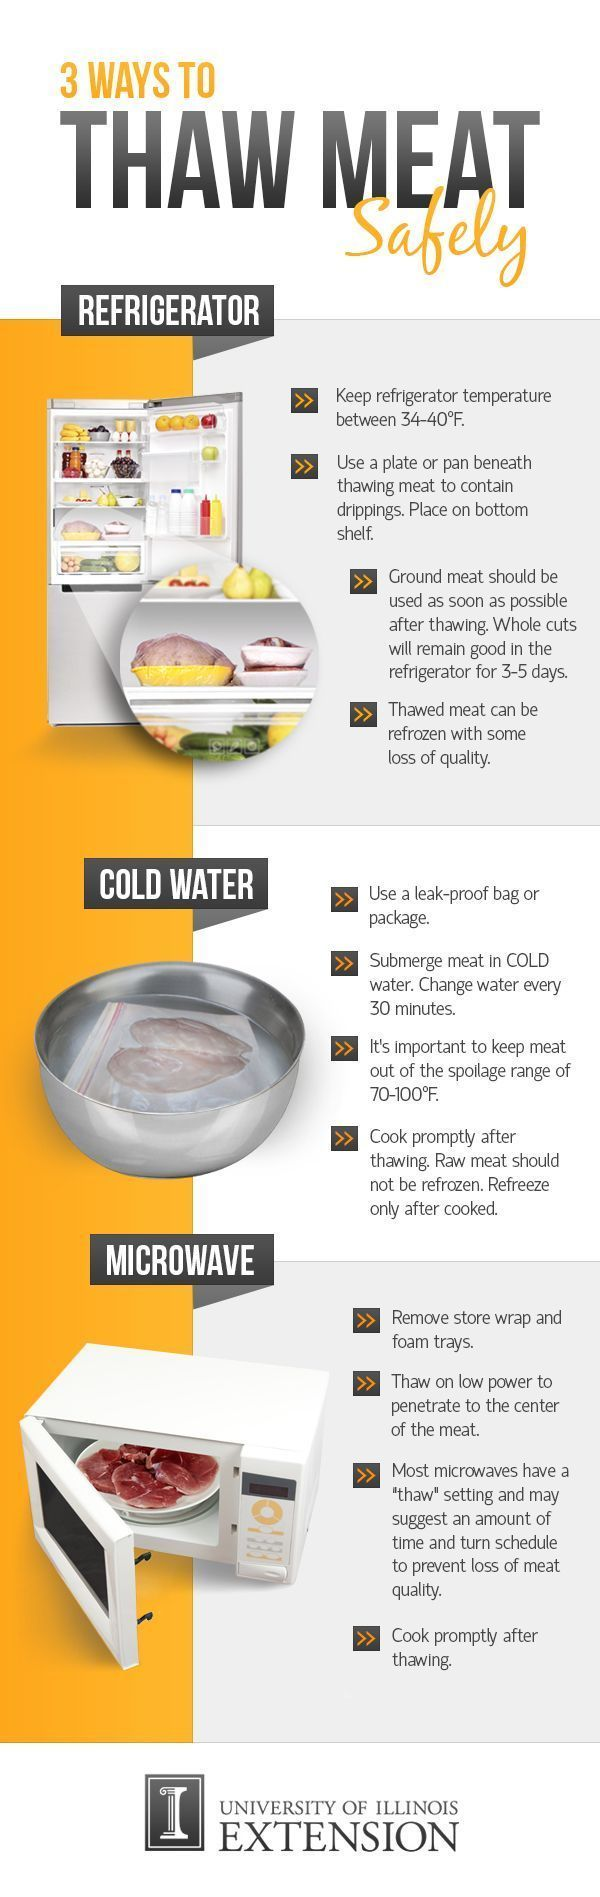 25 best ideas about food safety on pinterest food safety tips safety in the kitchen and food - Defrost chicken safe way ...